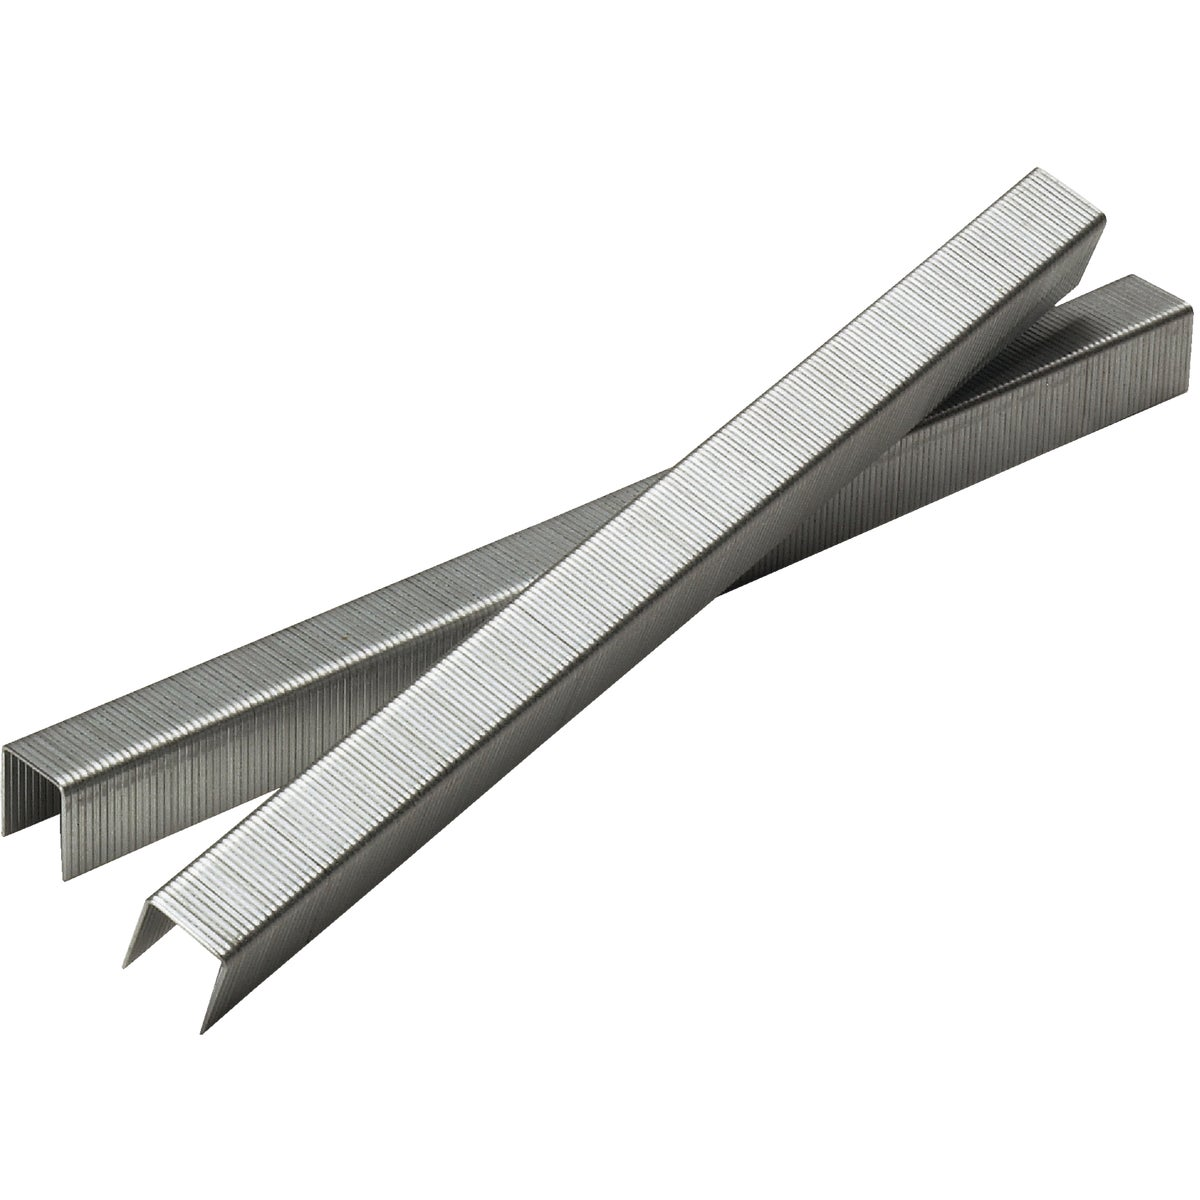 "20GA 3/8"" FINE STAPLE - F06BAA by Senco Brands"